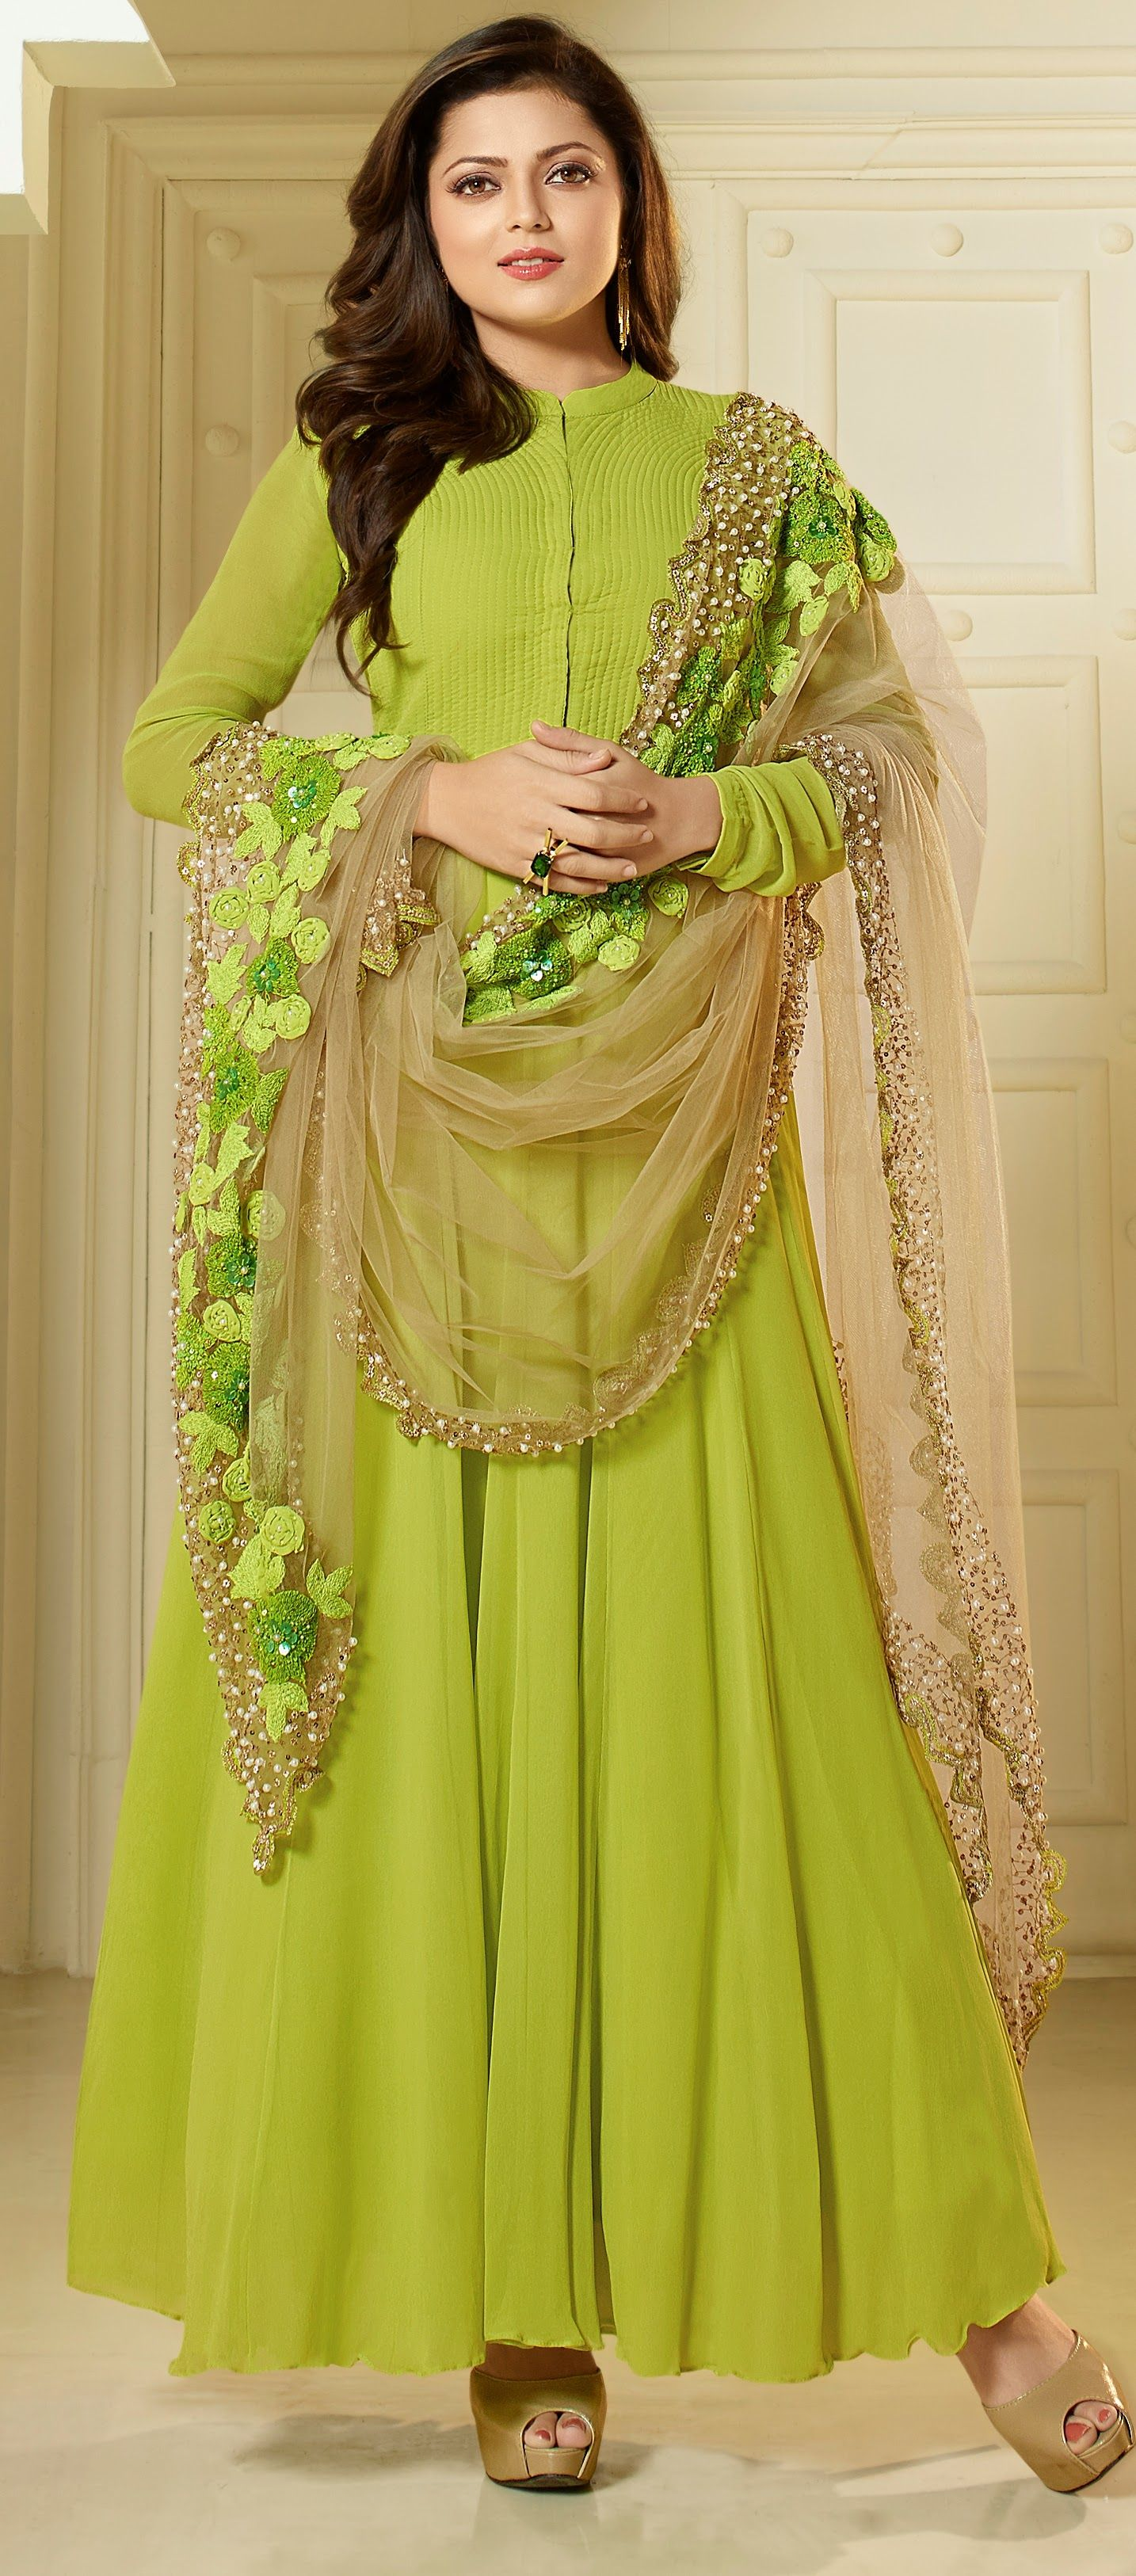 0b16077293 Drashti Dhami georgette green floor length plain Anarkali suit and heavy  dupatta with resham sequence and pearl work